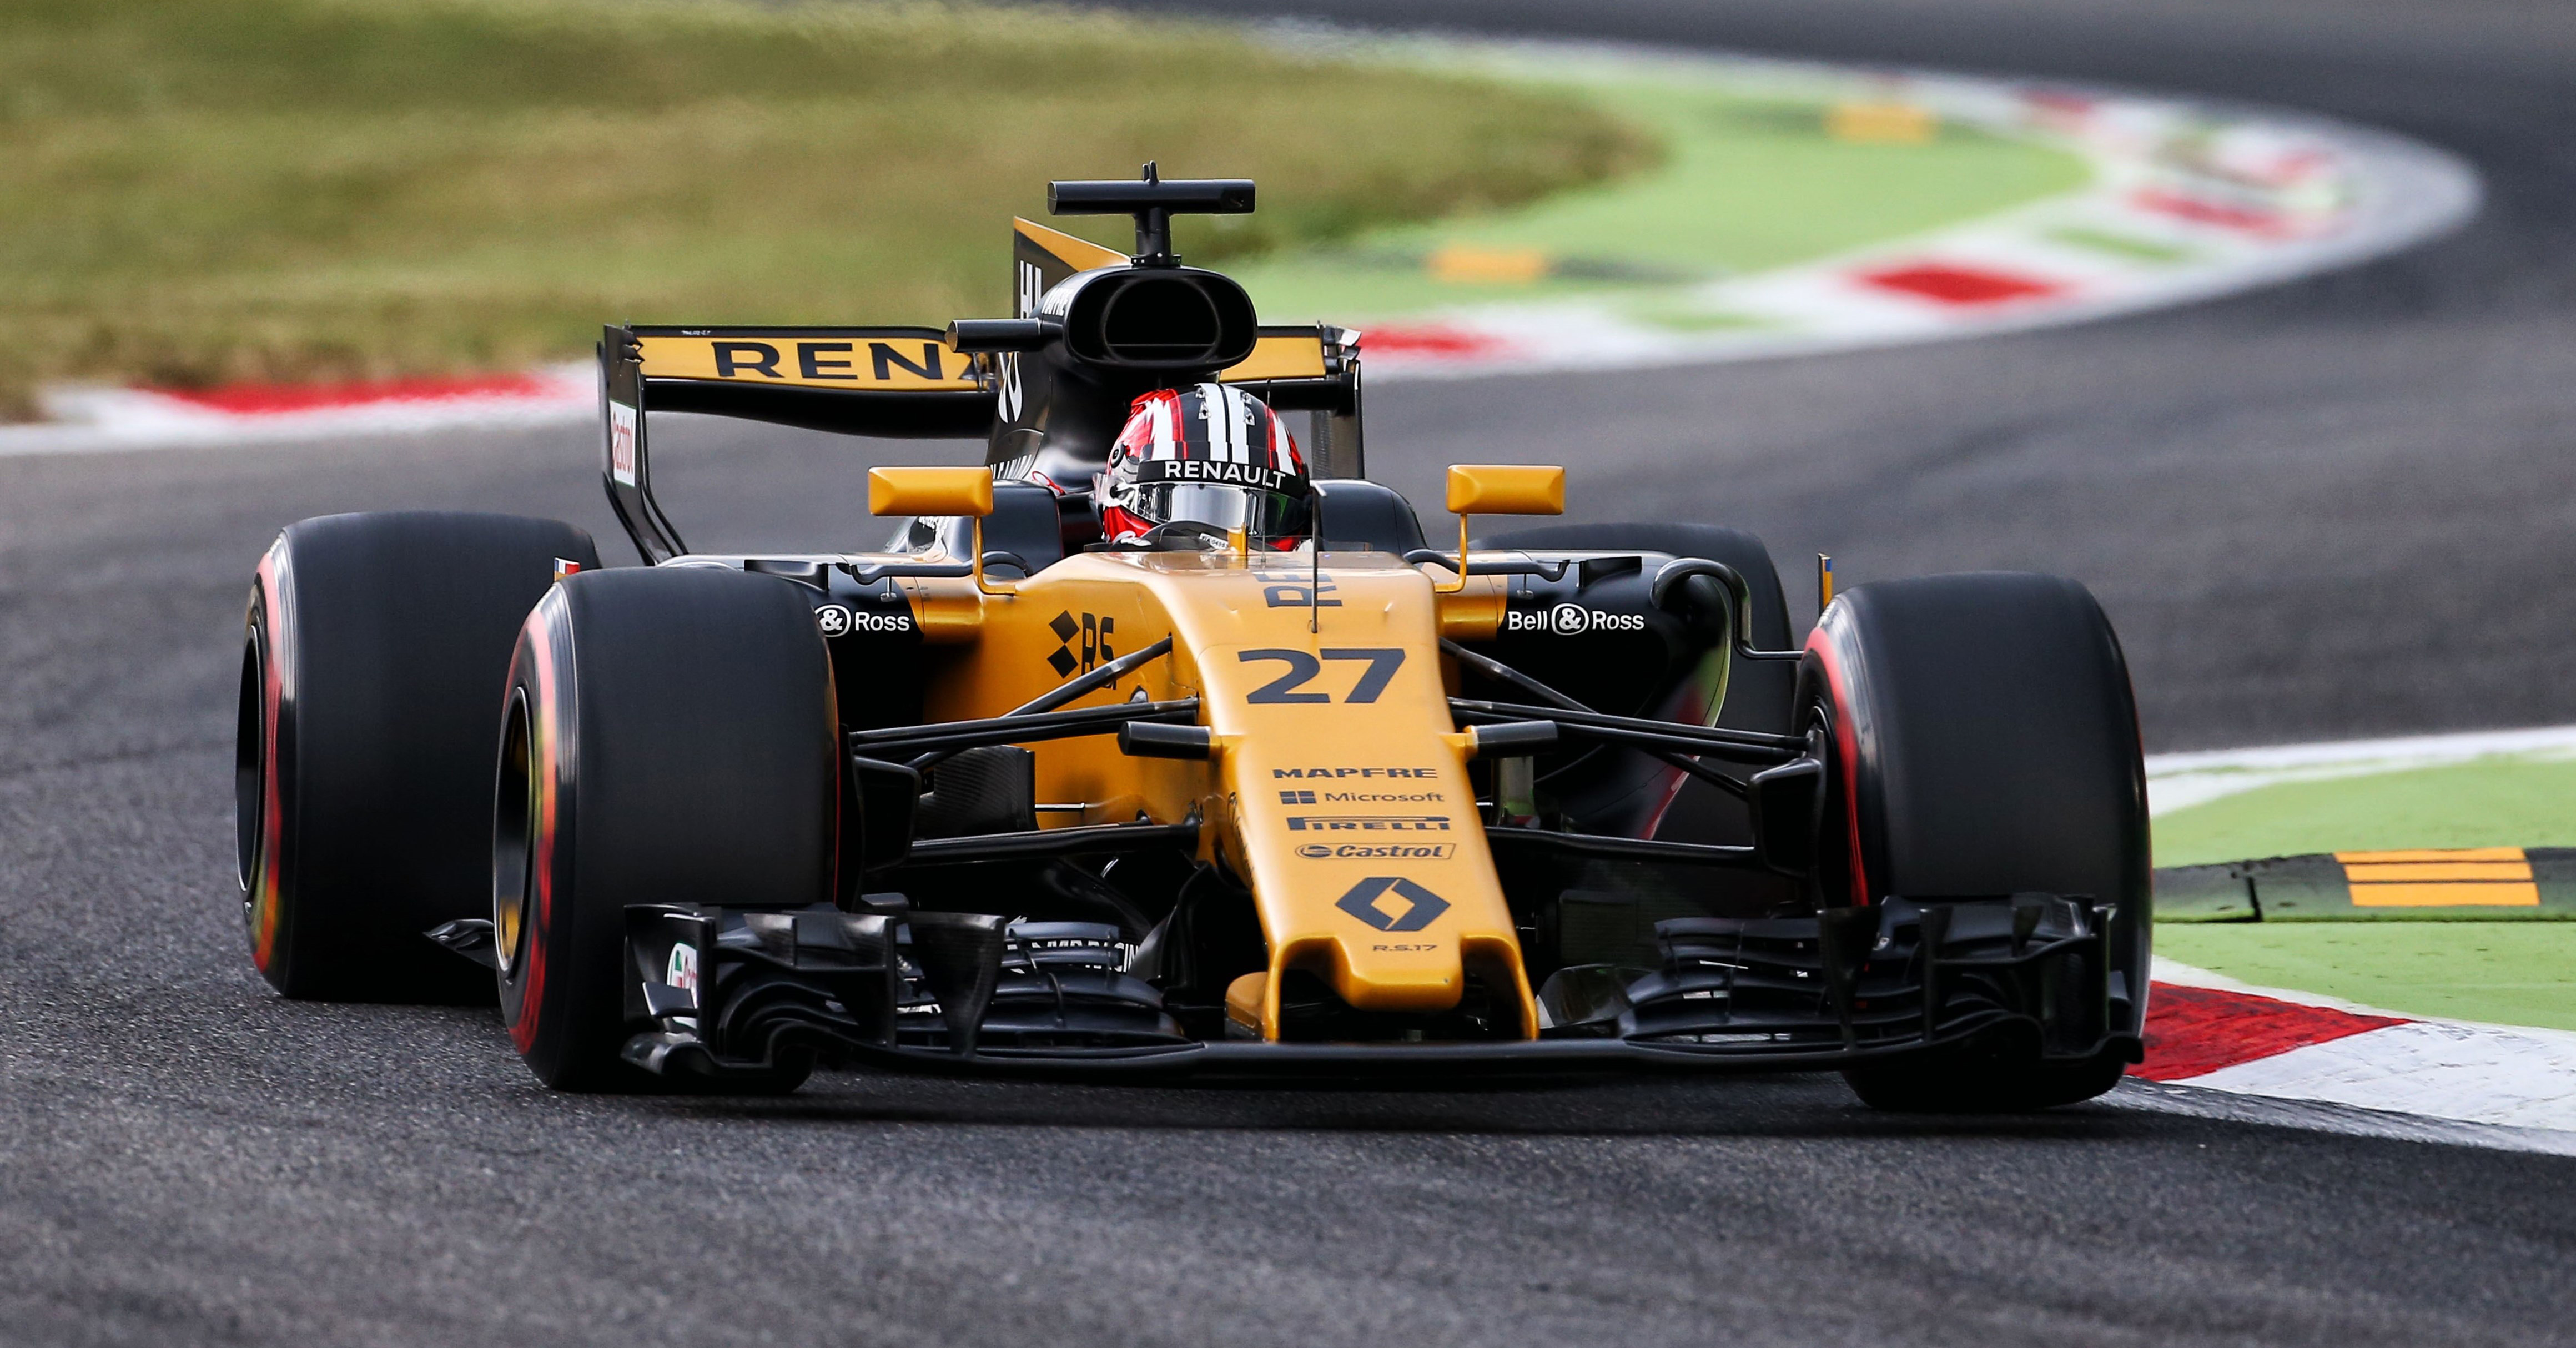 mclaren chooses renault as new engine supplier from 2018 f1 season honda partners up with toro. Black Bedroom Furniture Sets. Home Design Ideas